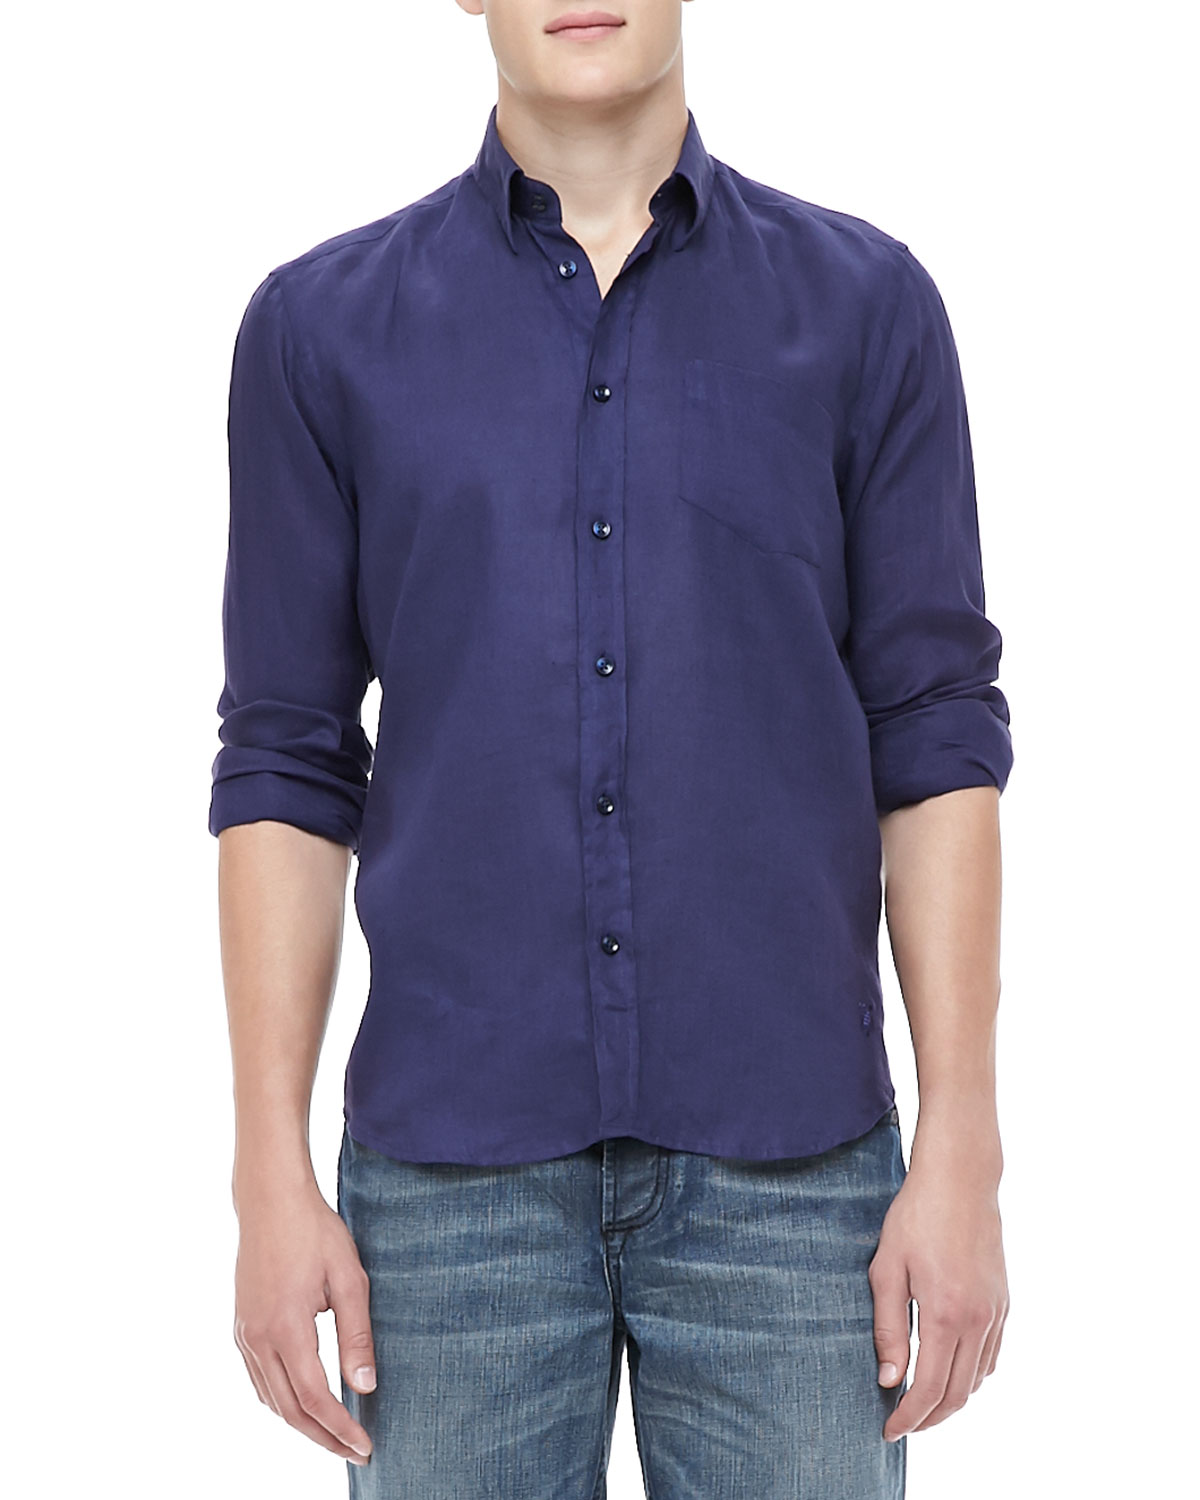 Banana Republic Mens Linen Shirt